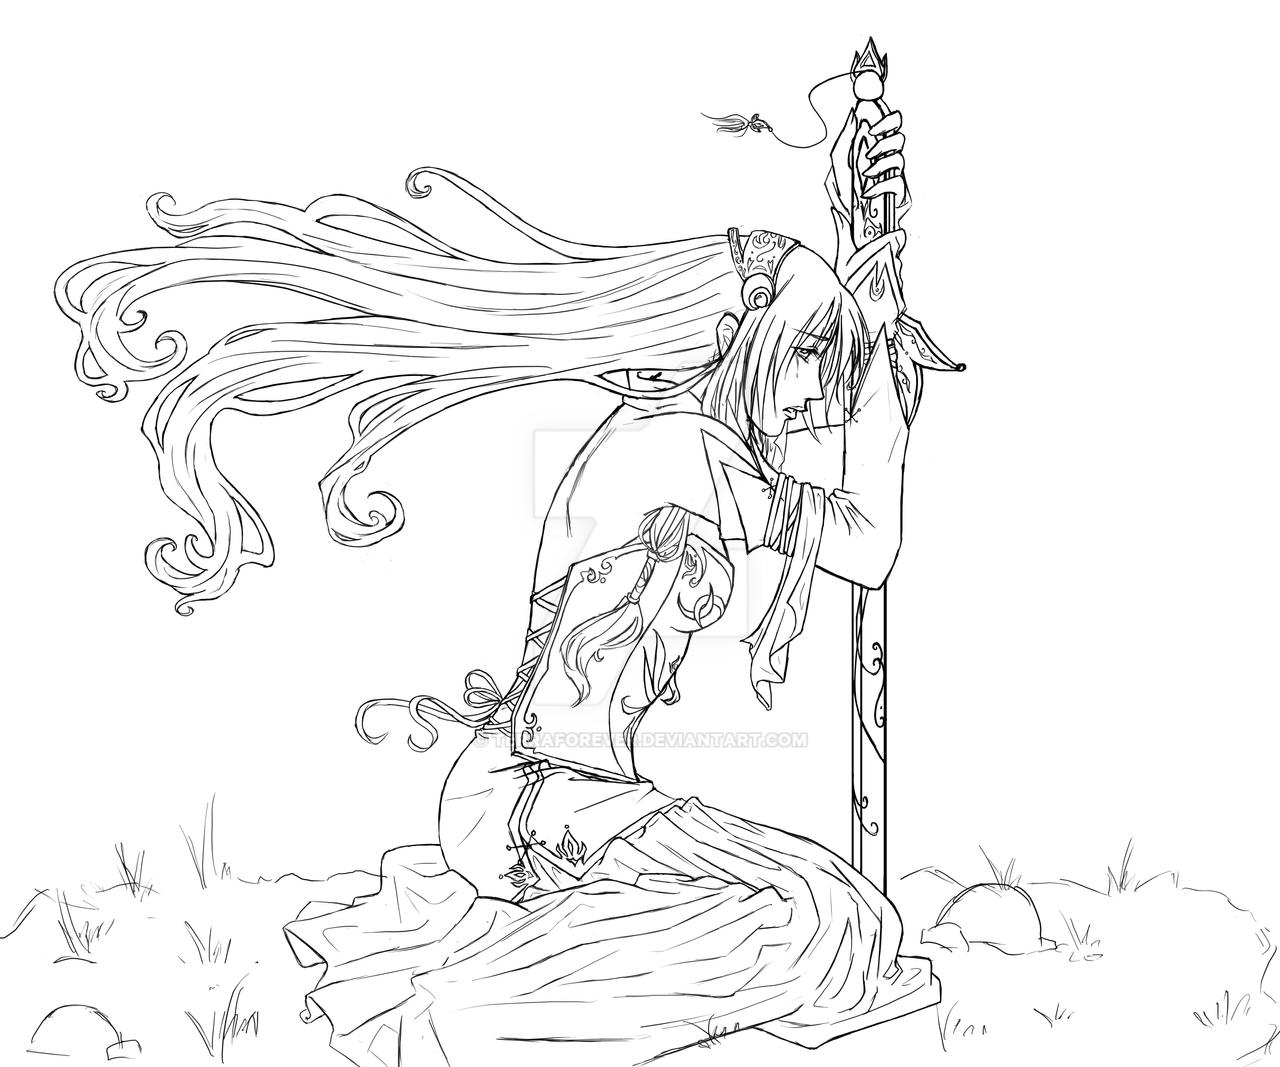 Fall to Your Knees Lineart by TerraForever on DeviantArt